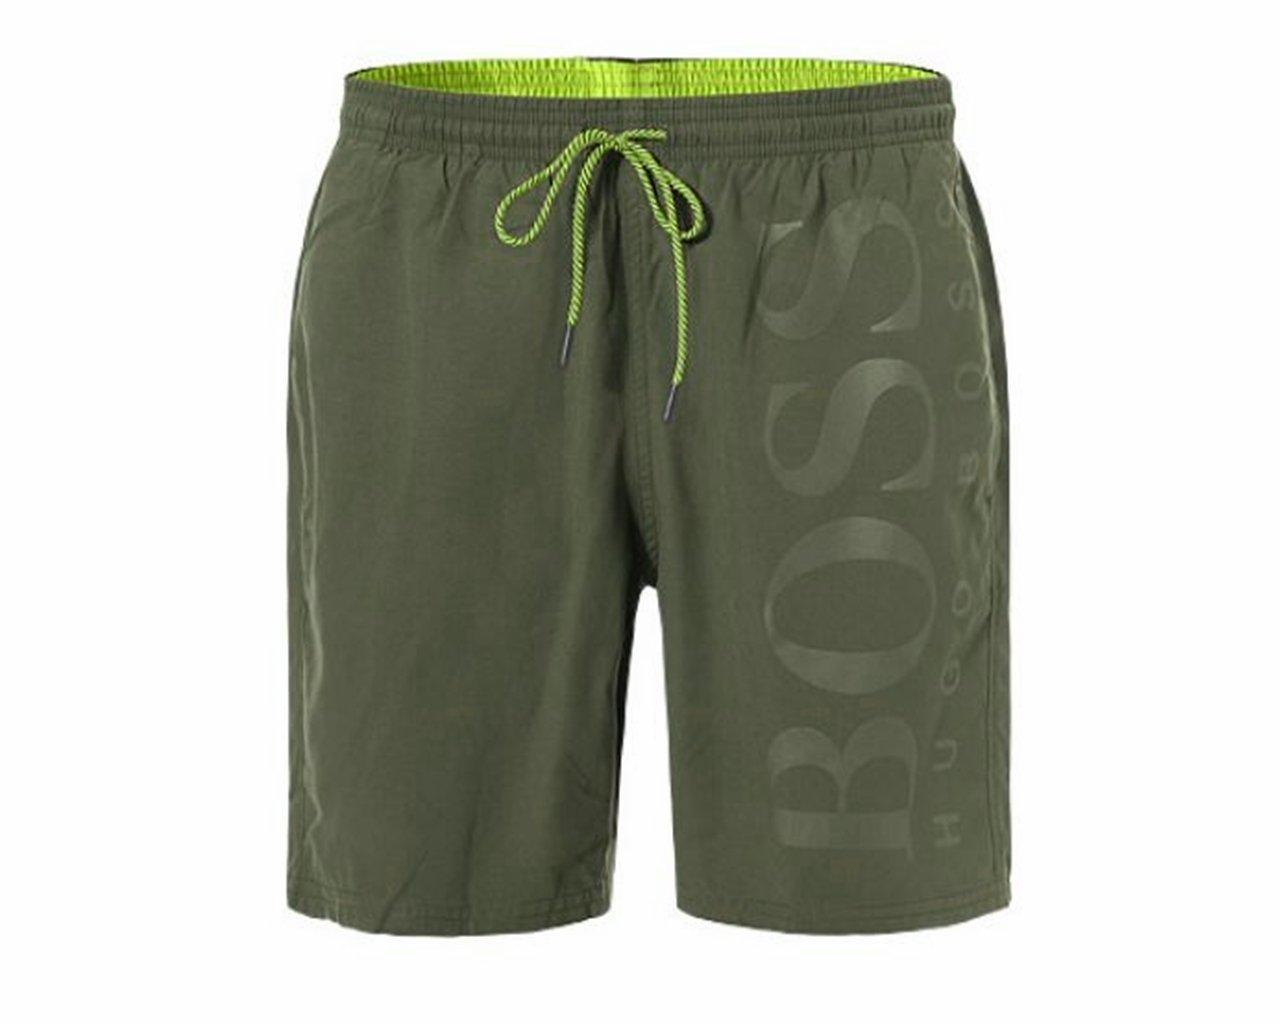 ba805fcf8a BOSS Orca Swim Shorts Green in Green for Men - Lyst